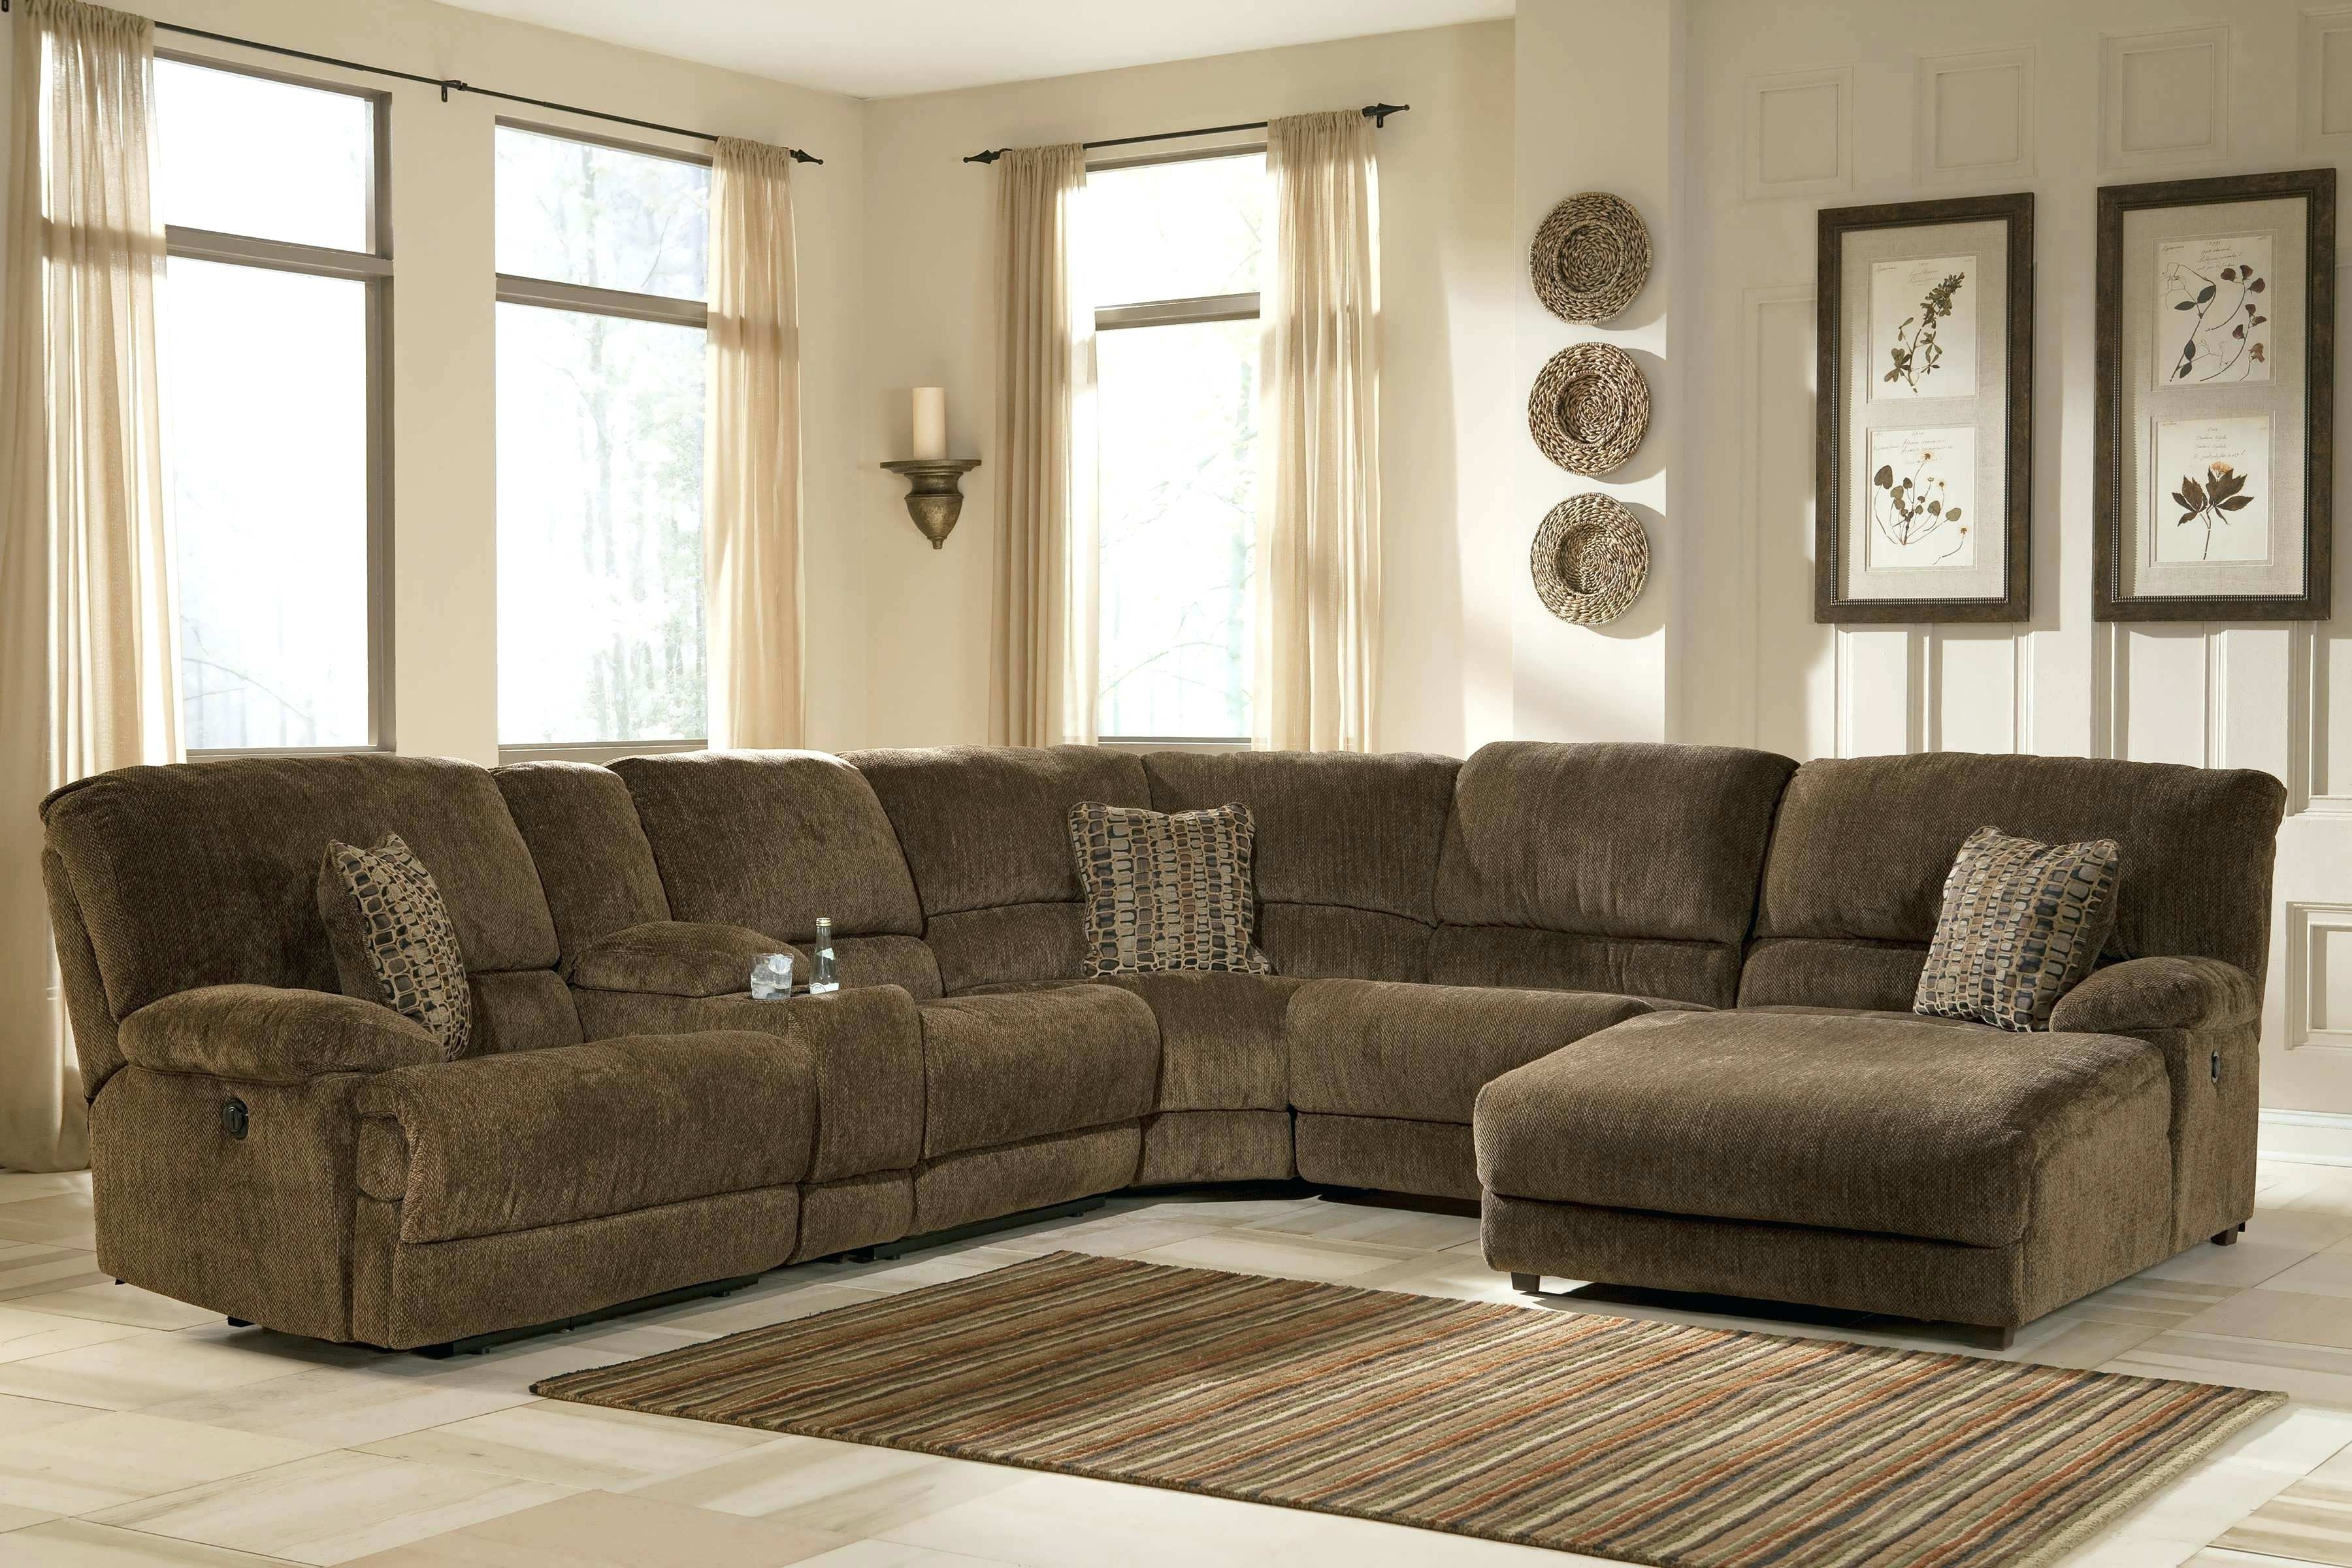 Pottery Barn Seabury Sectional Sofa Turner Leather Reviews Couch In Most Recent Pottery Barn Sectional Sofas (View 14 of 20)